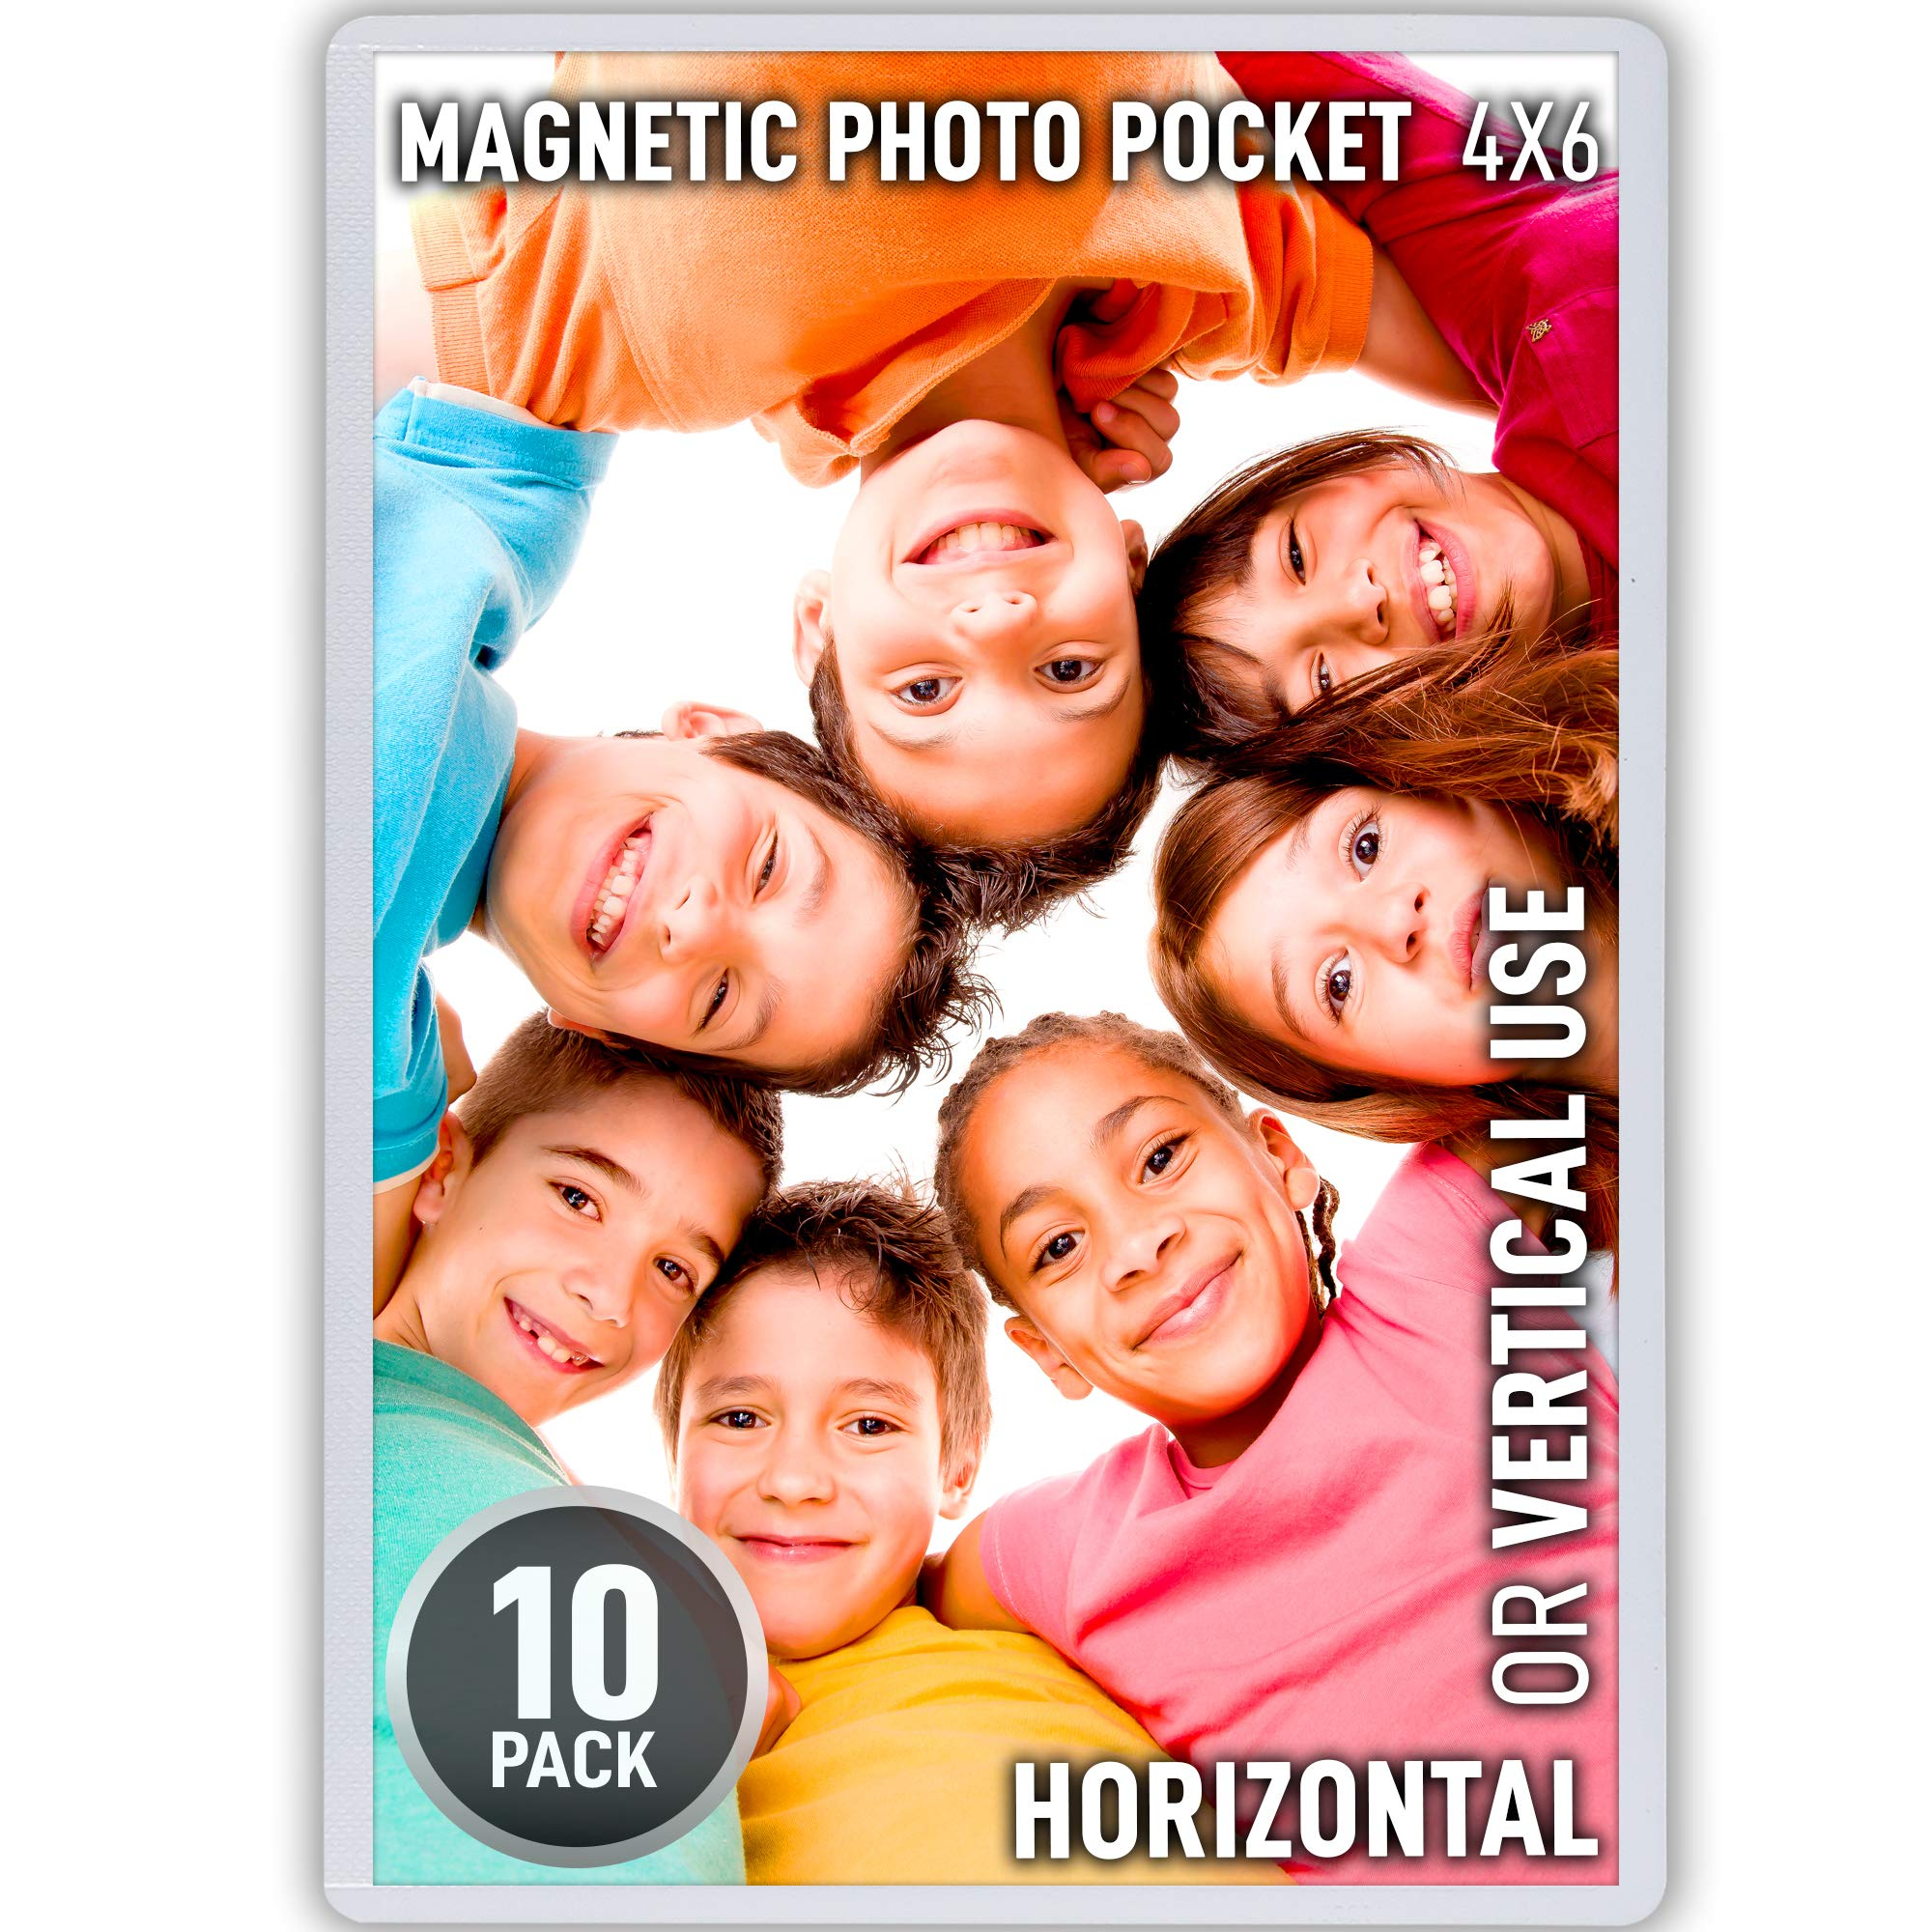 Magnetic Picture Frames with Thicker & Stronger Flexible Design - 10 Pack Fridge Photo Magnets with Sturdy, Extra Thick and Powerful Magnetic Frame, Securely Holds 4x6 Inch Photos - by Zulay Kitchen by Zulay Kitchen